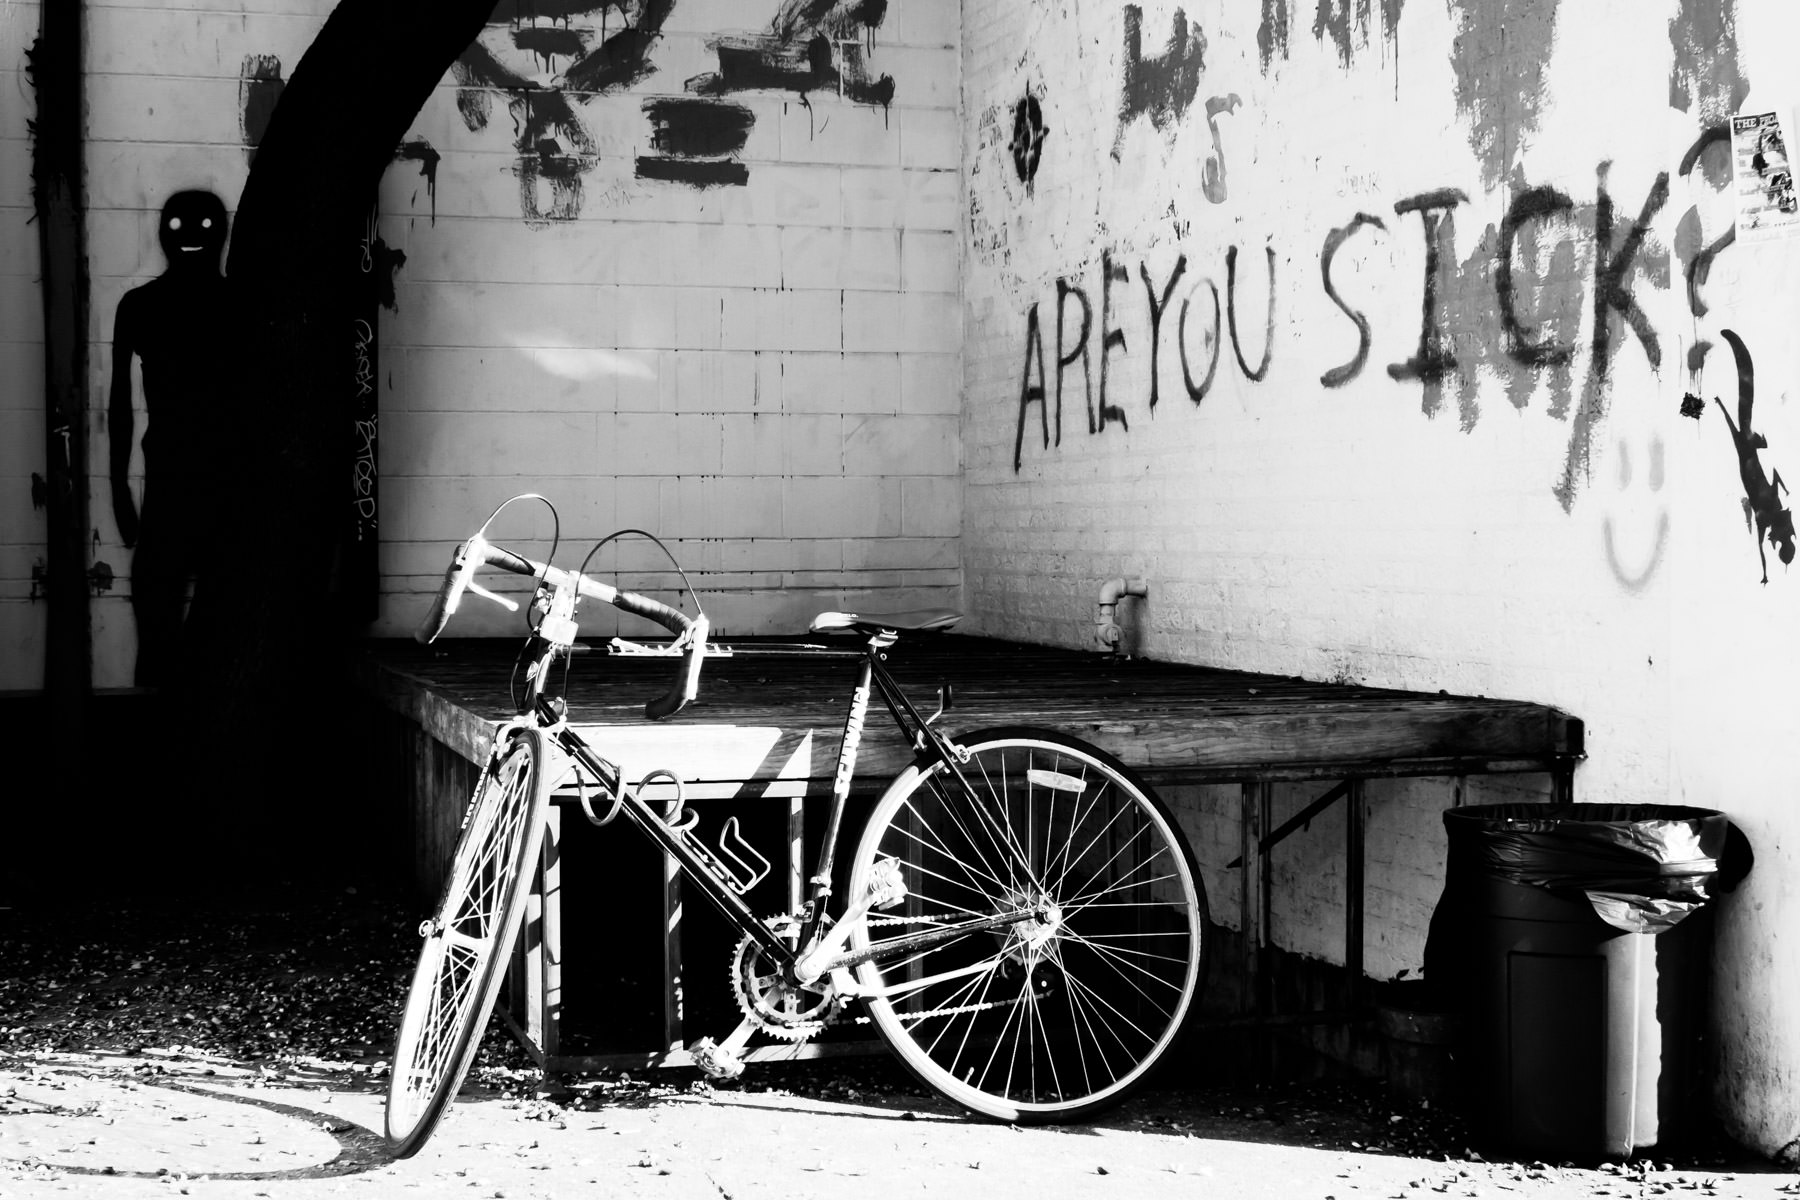 A bicycle and graffiti in Denton, Texas.